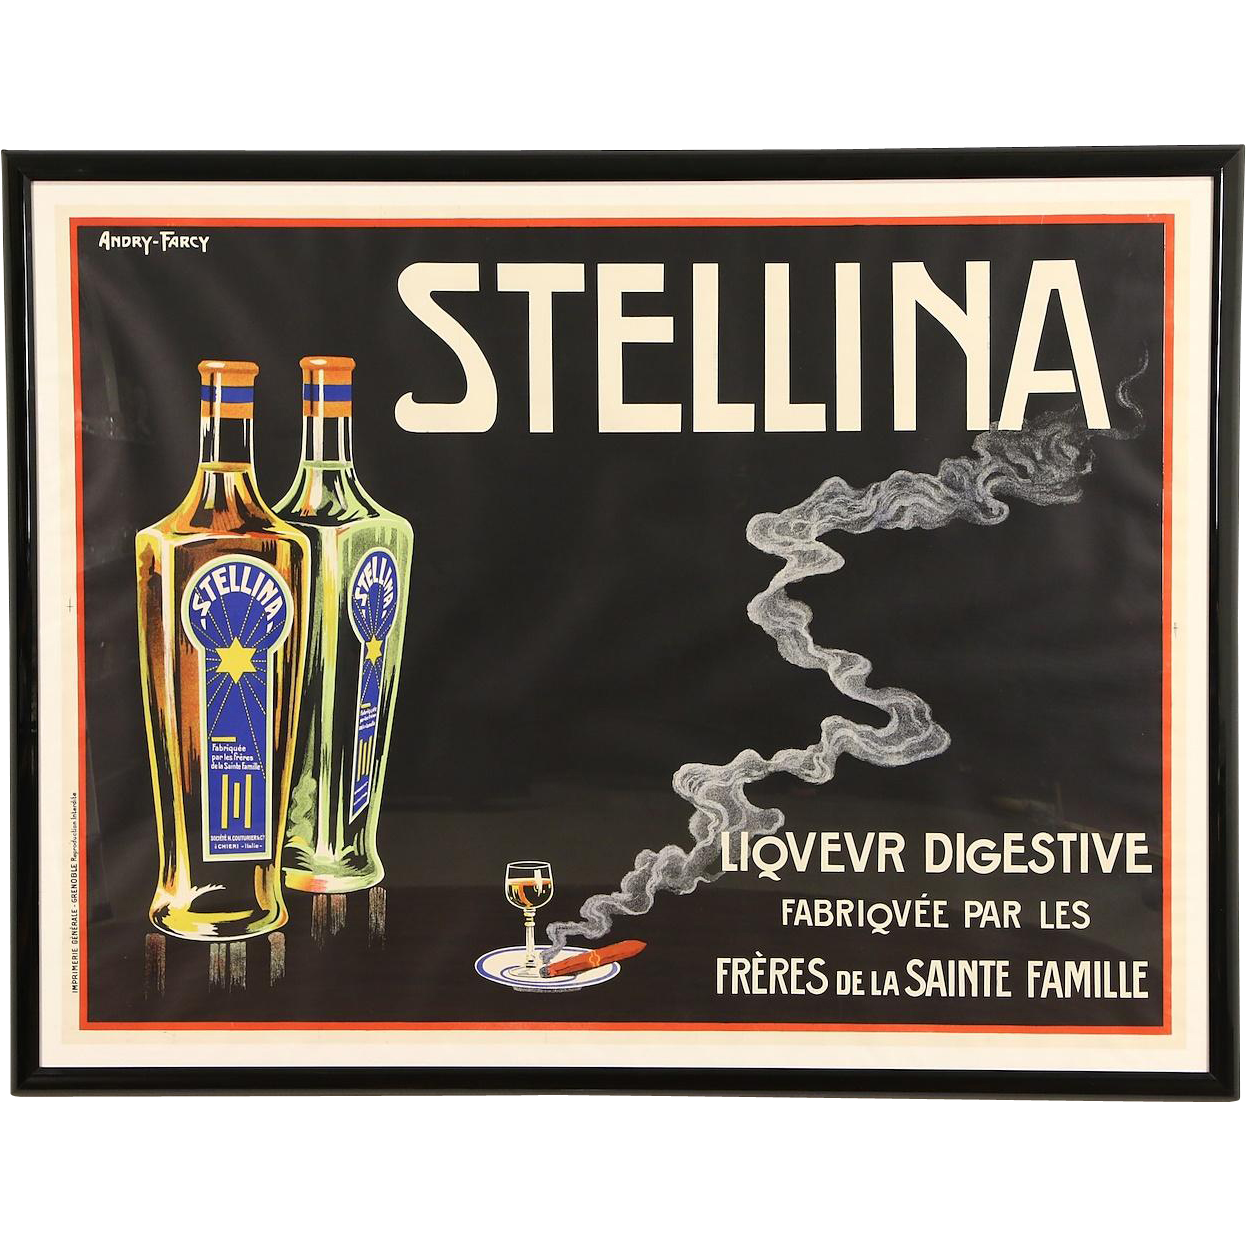 Stellina Liqueur Digestive French Advertising Poster, Billy Hork Gallery